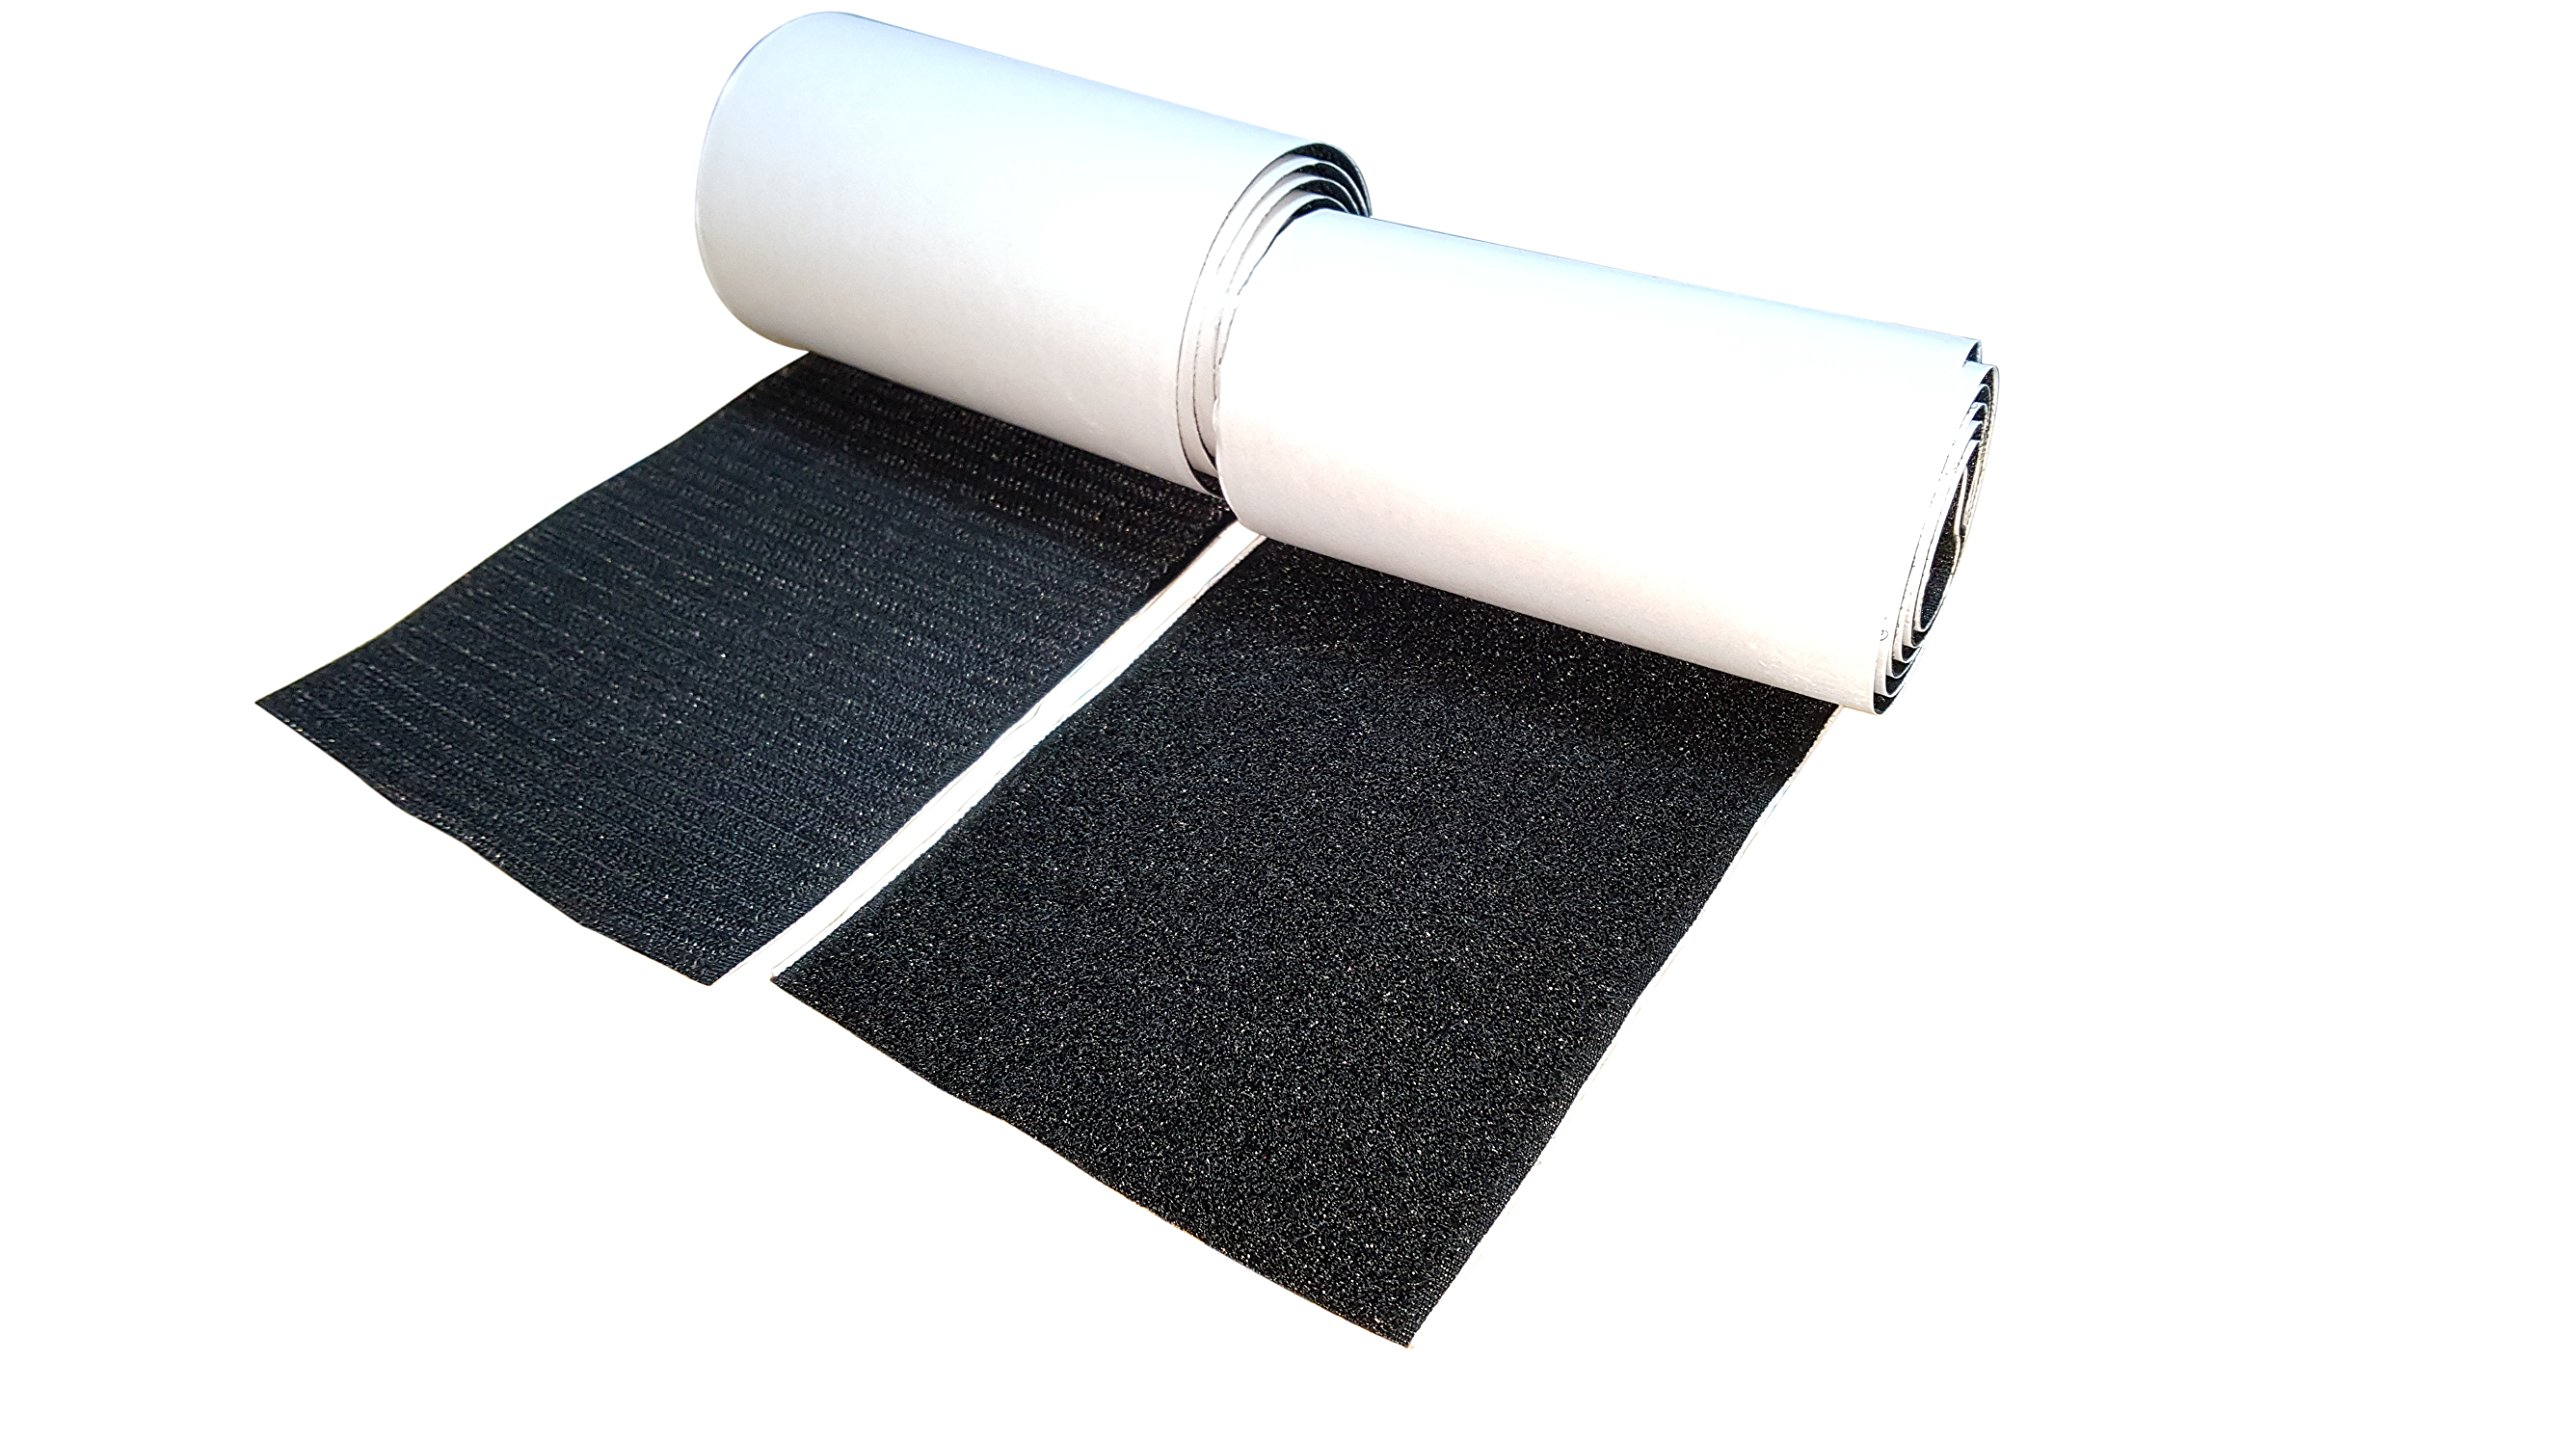 10CM Wide(Approx 4'') 1 Meter Long Self Adhestive Hook and Loop Strips Set with Super Sticky Glue Nylon Fabric Fastener Black